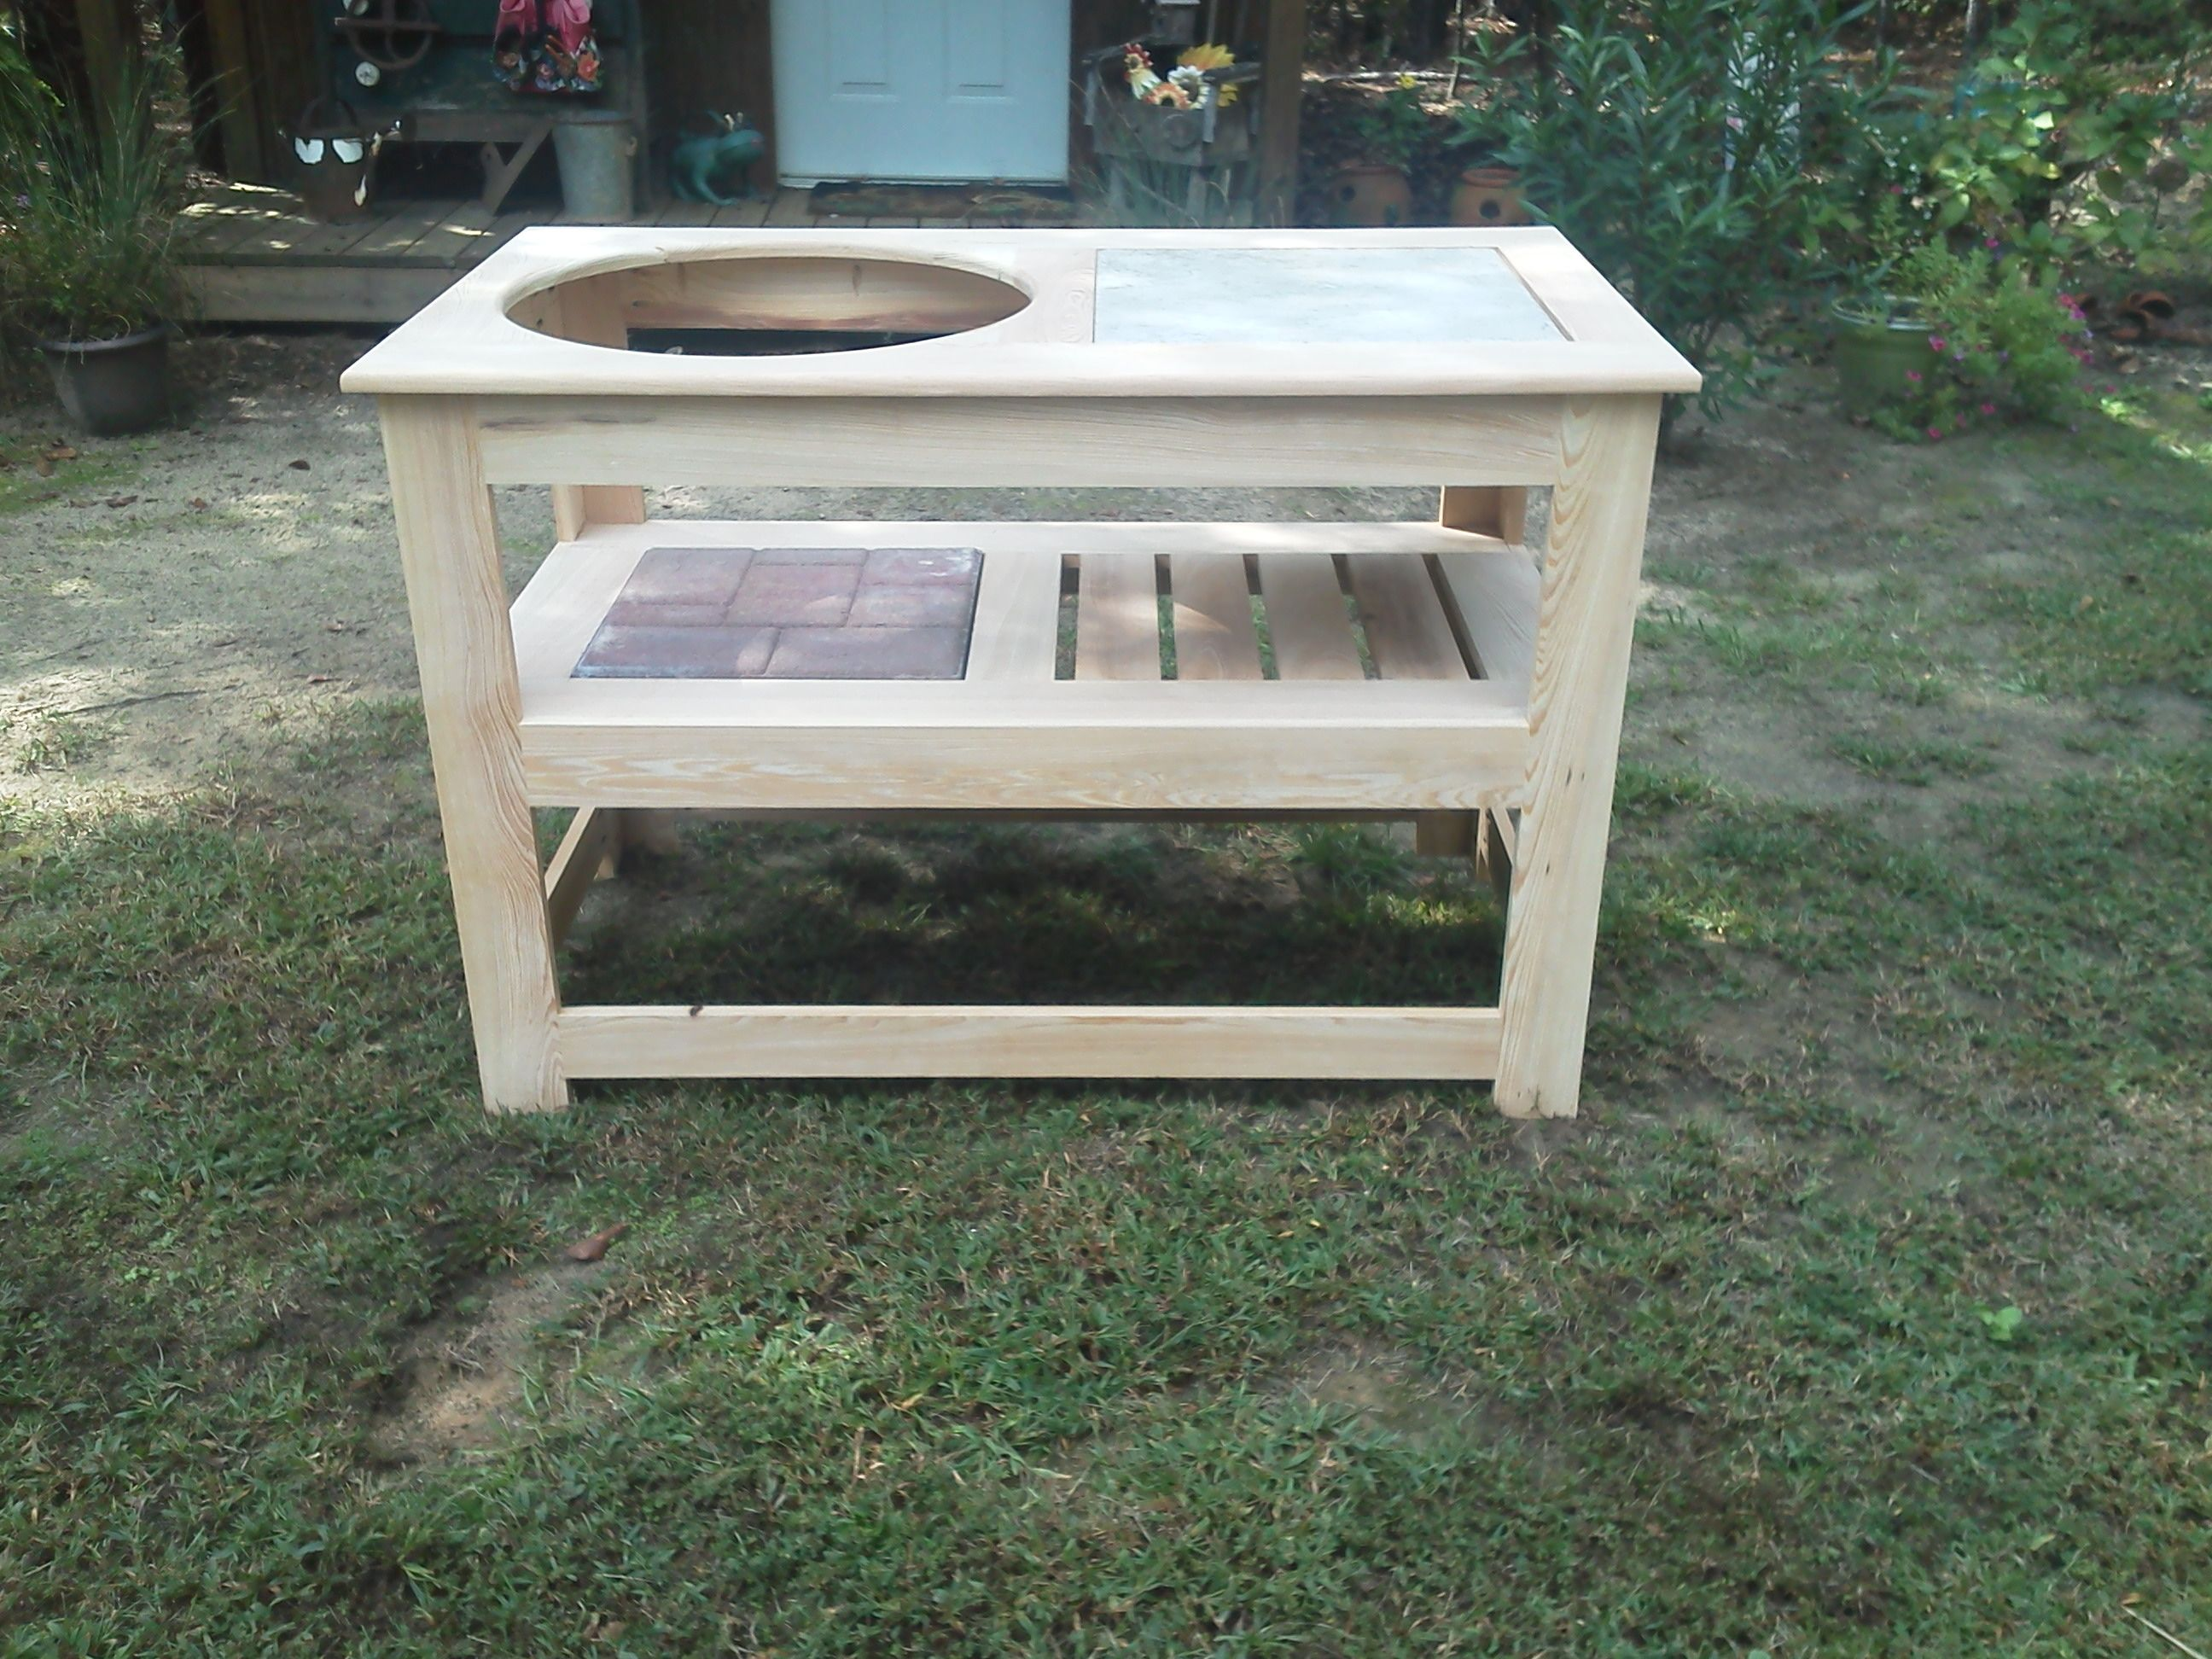 Handmade Indy Dell Grill Table For Big Green Egg, Primo